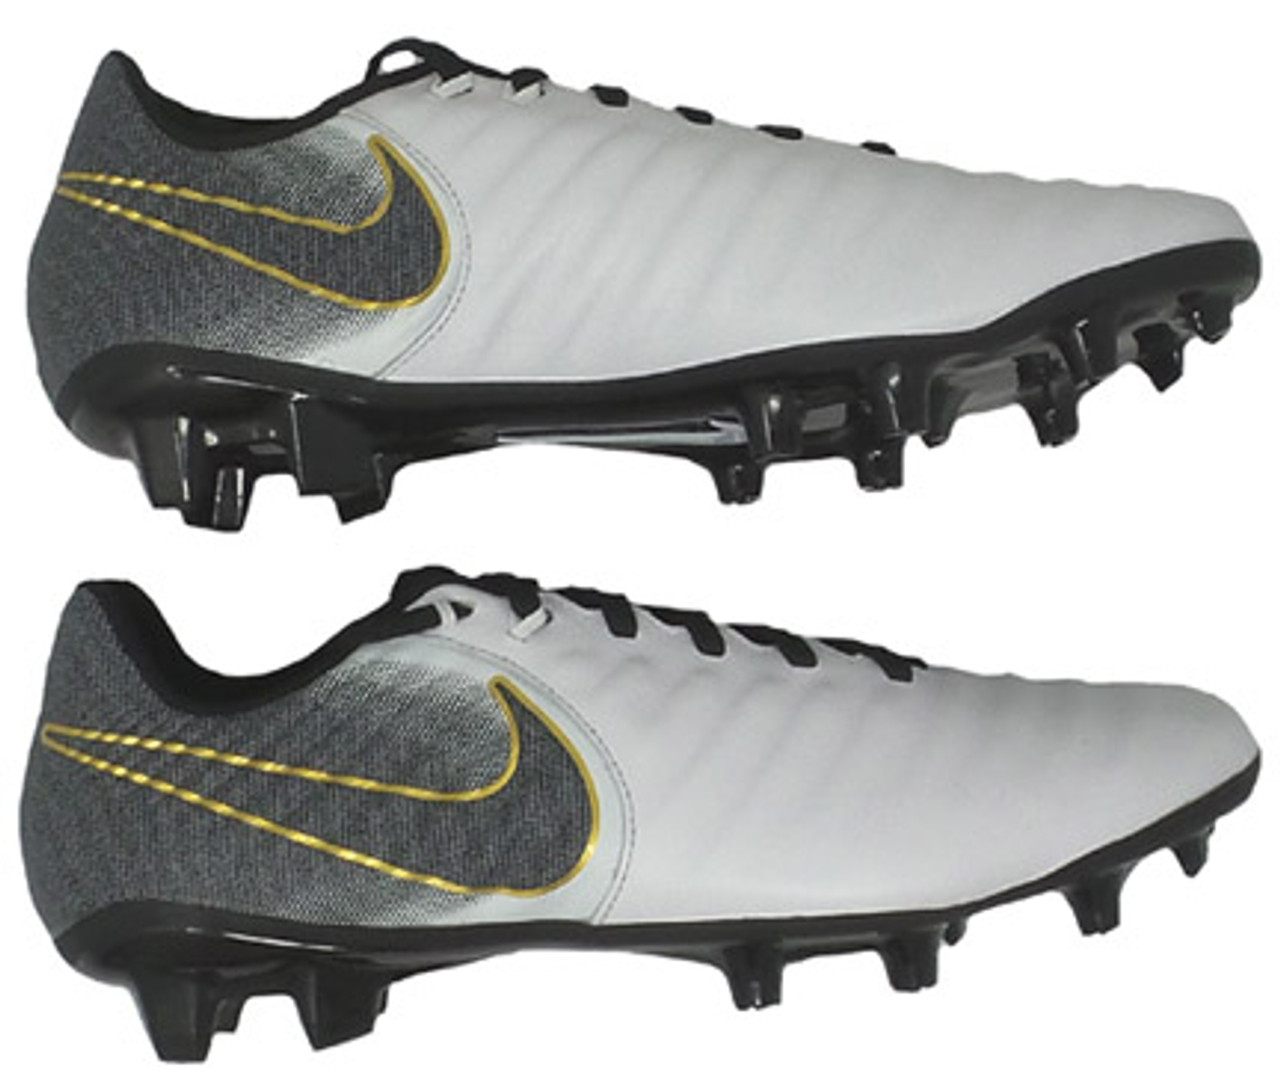 wholesale dealer 96e17 55fb9 NIKE LEGEND 7 ACADEMY FG WHITE/BLACK